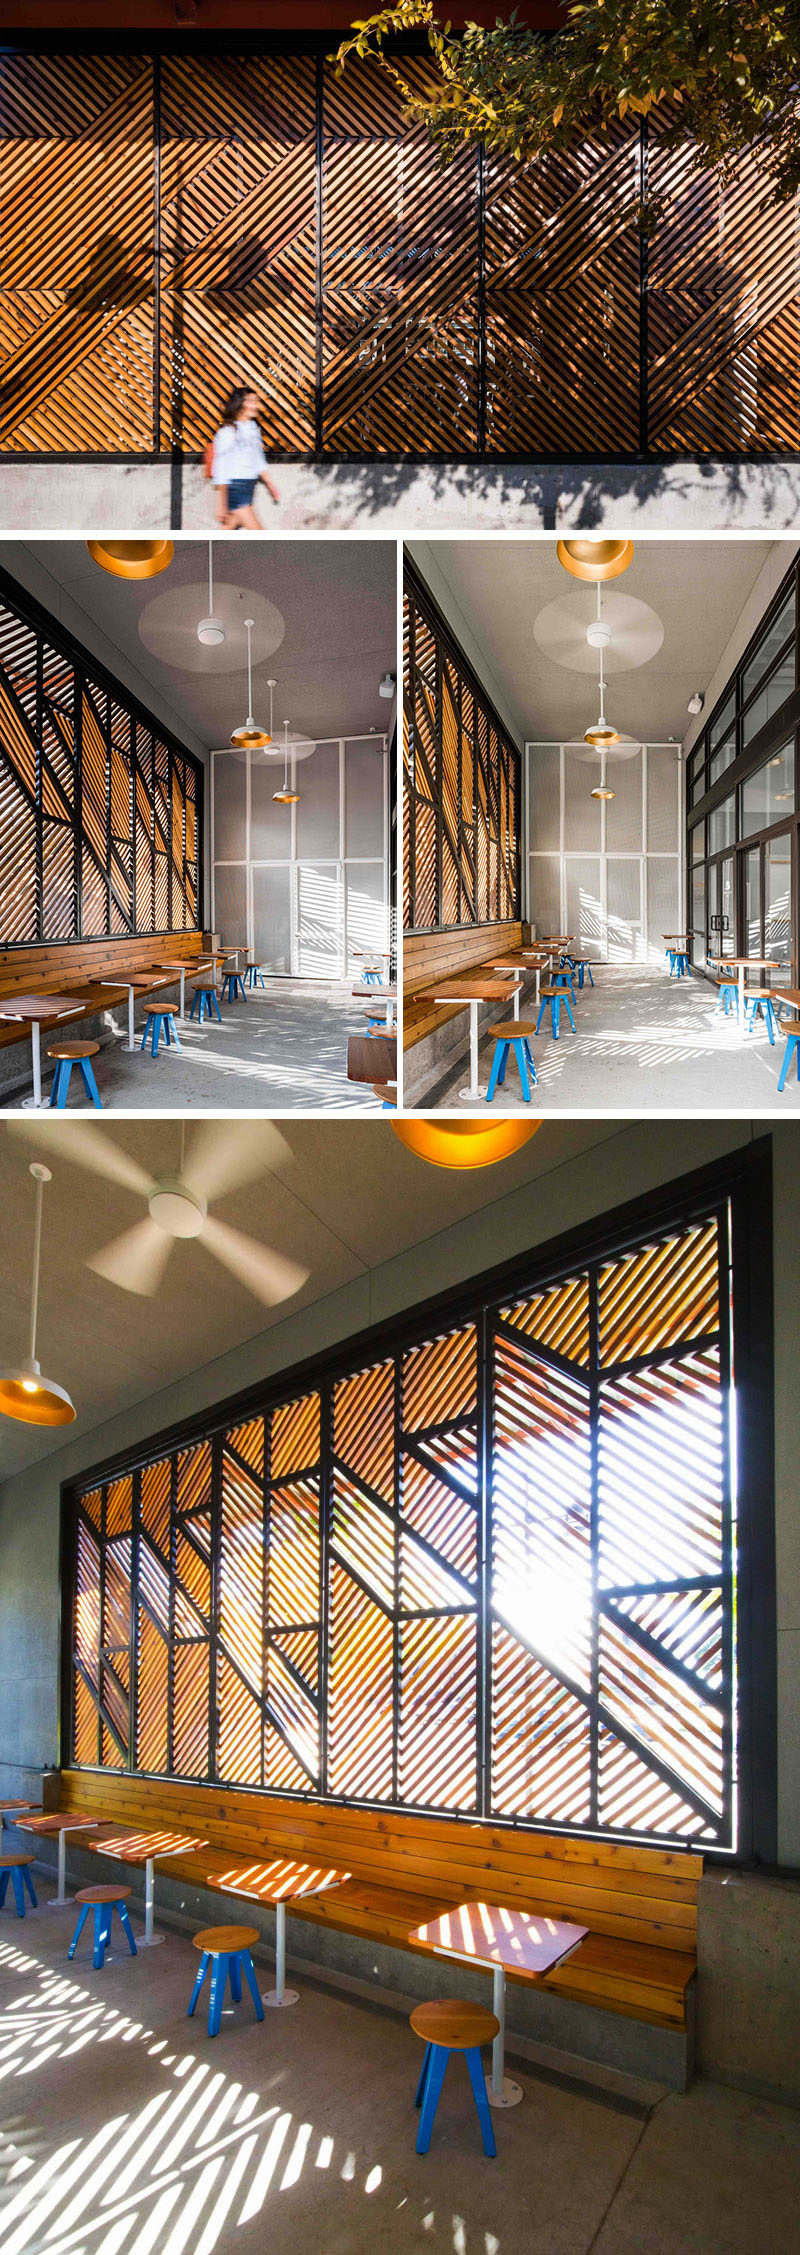 This modern coffee shop design has a houndstooth patterned cedar screen to create visual interest from the street and from within the enclosed patio. Inside the patio, sunlight is filtered through the pattern allowing for interesting shadows. The screen also shields guests from the street just outside.